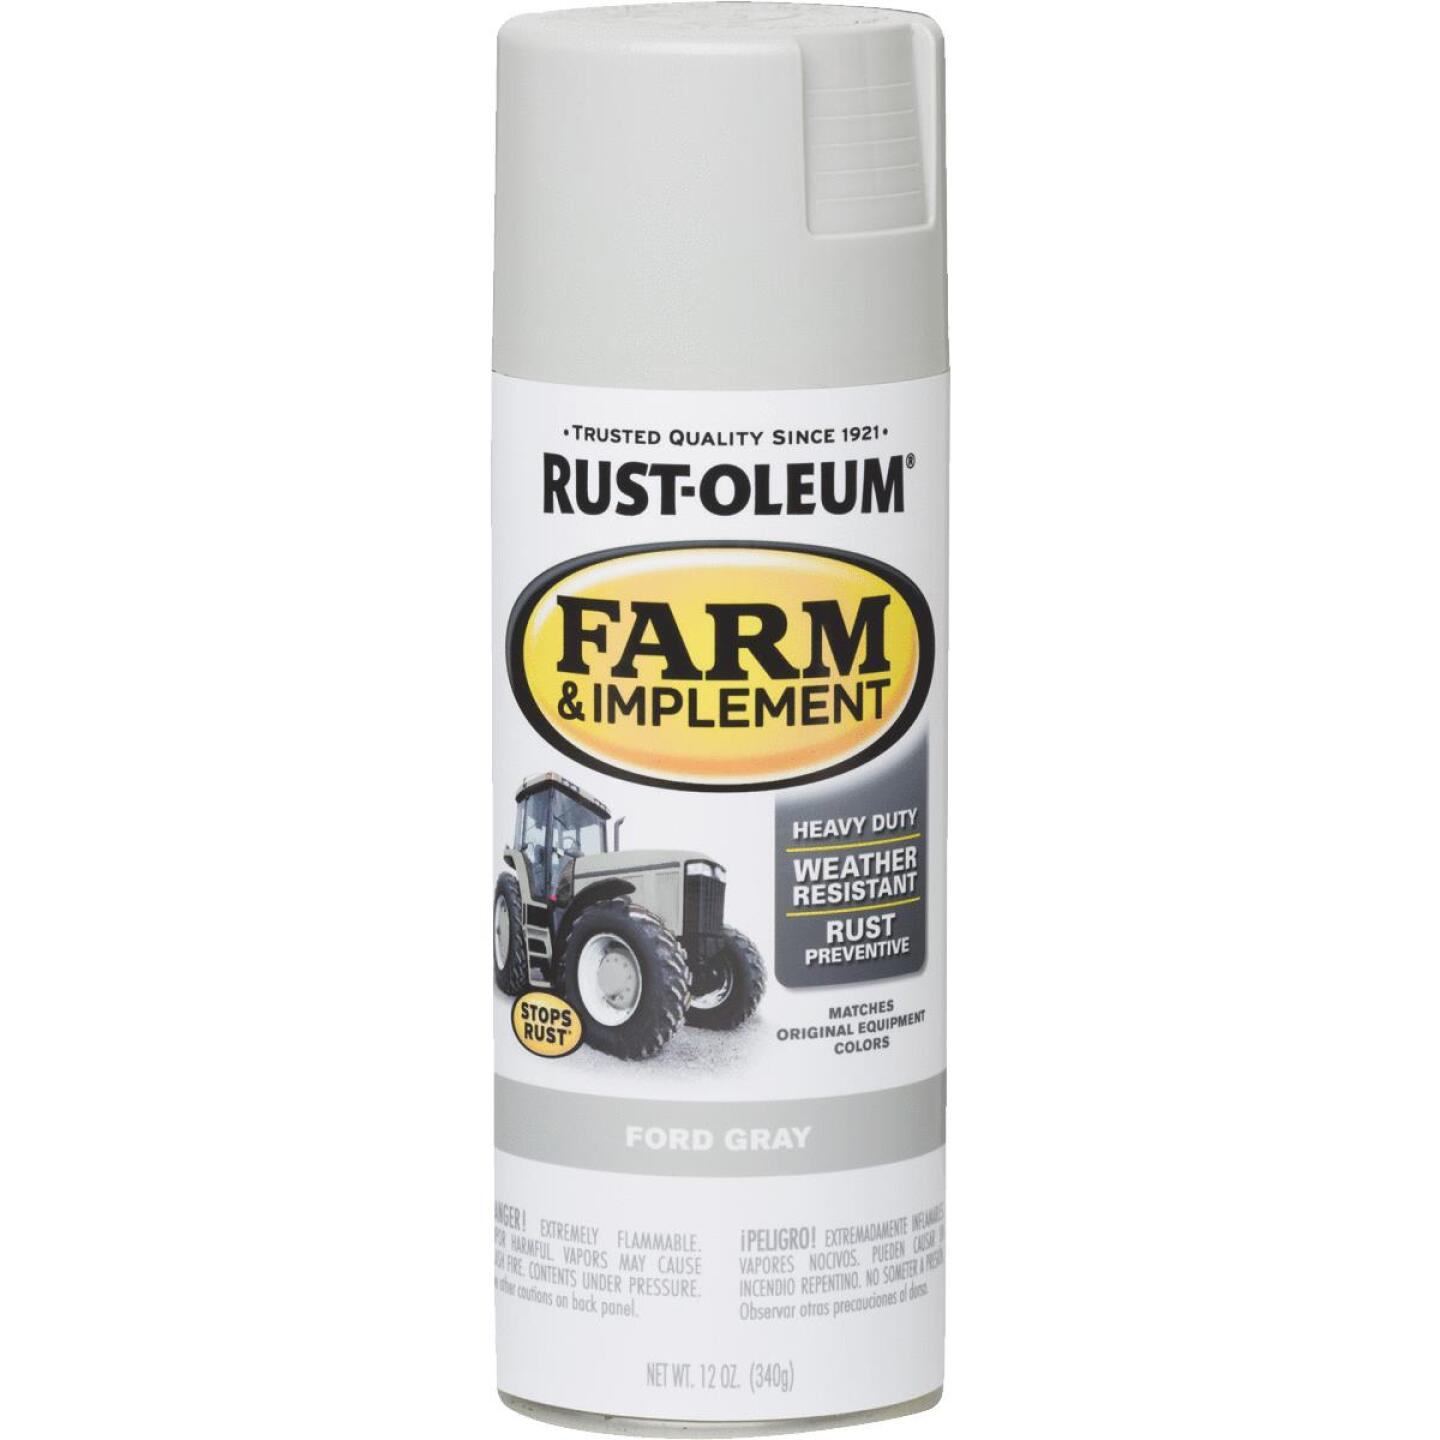 Rust-Oleum 12 Oz. Ford Gray Farm & Implement Spray Paint Image 1